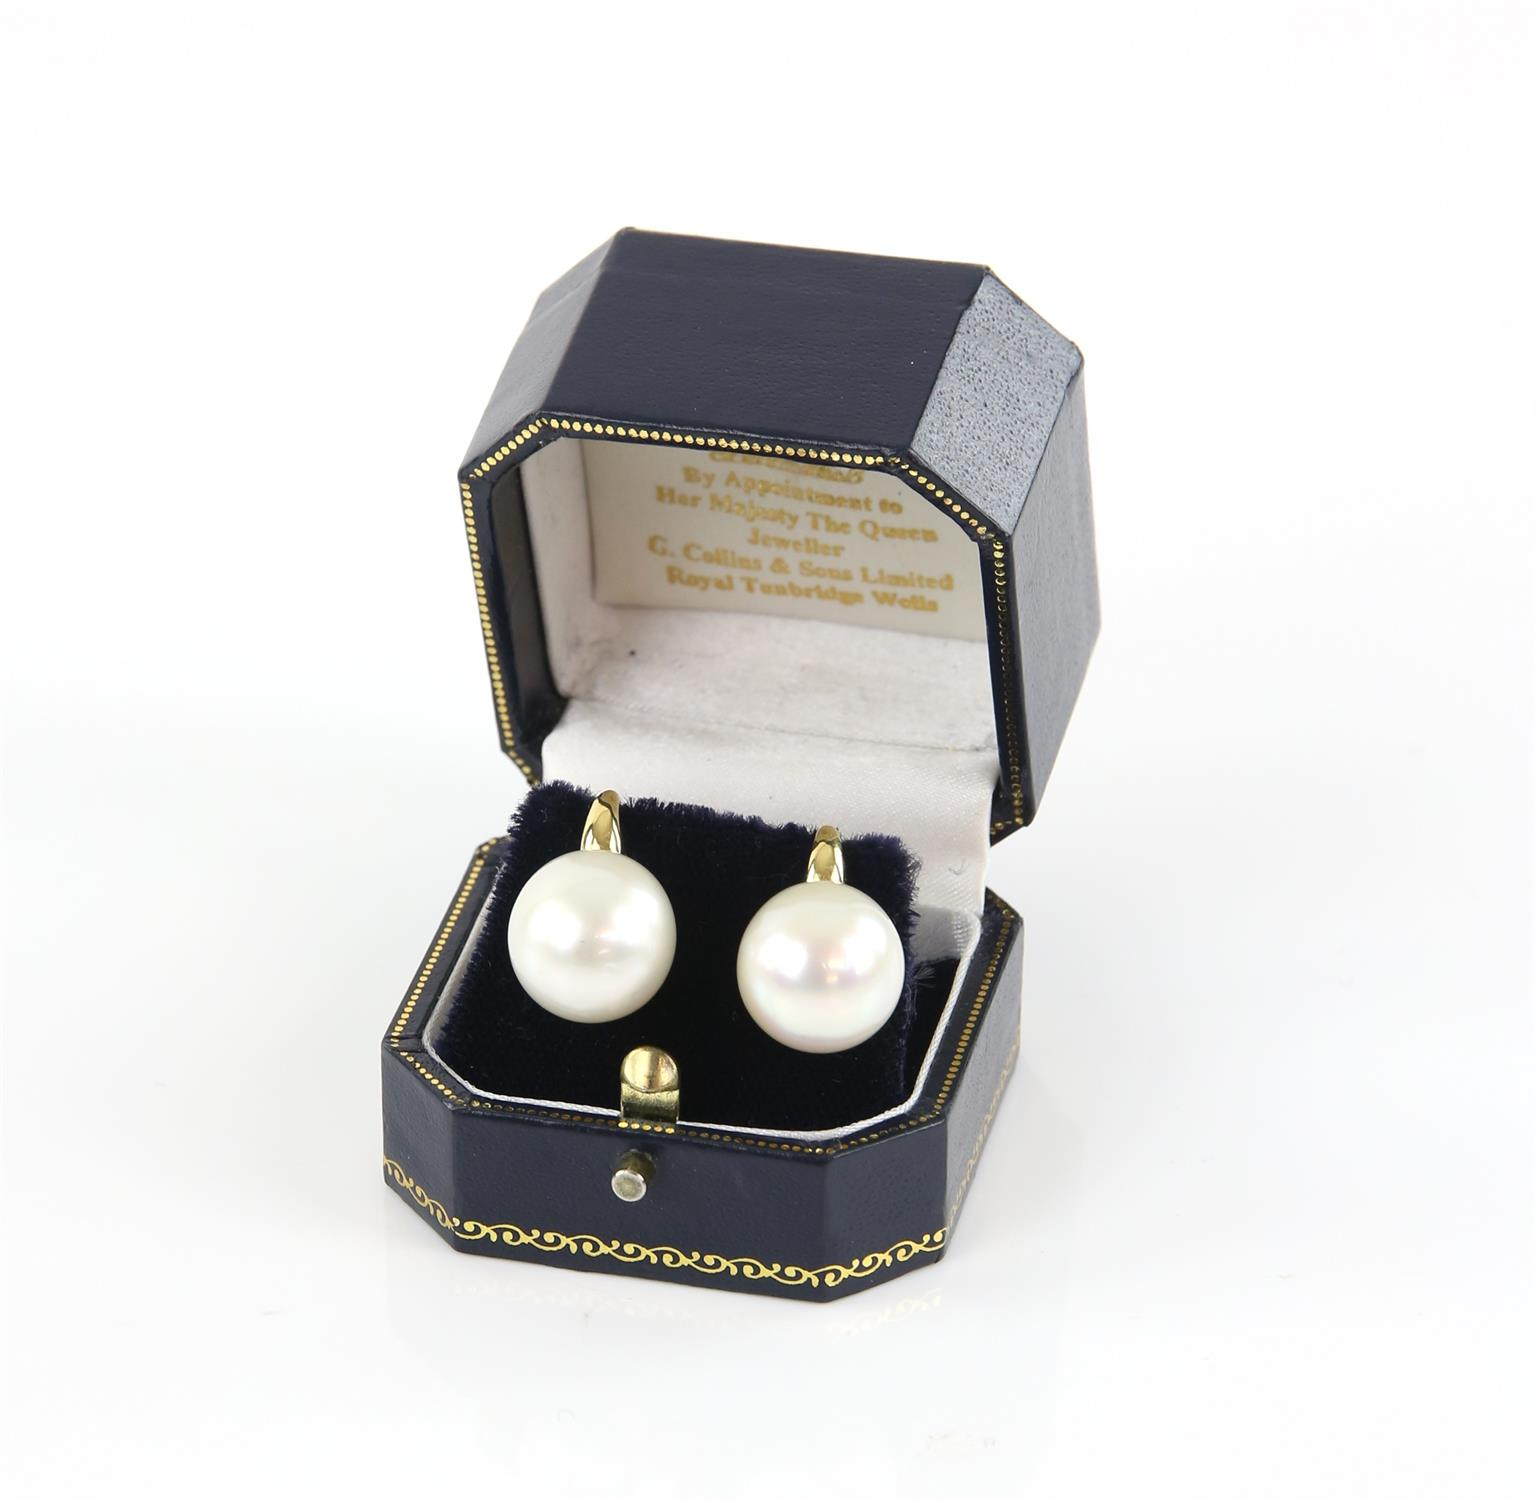 A pair of South Sea pearl earrings, pearls measuring 14mm in diameter, with hook fitting, - Image 2 of 2